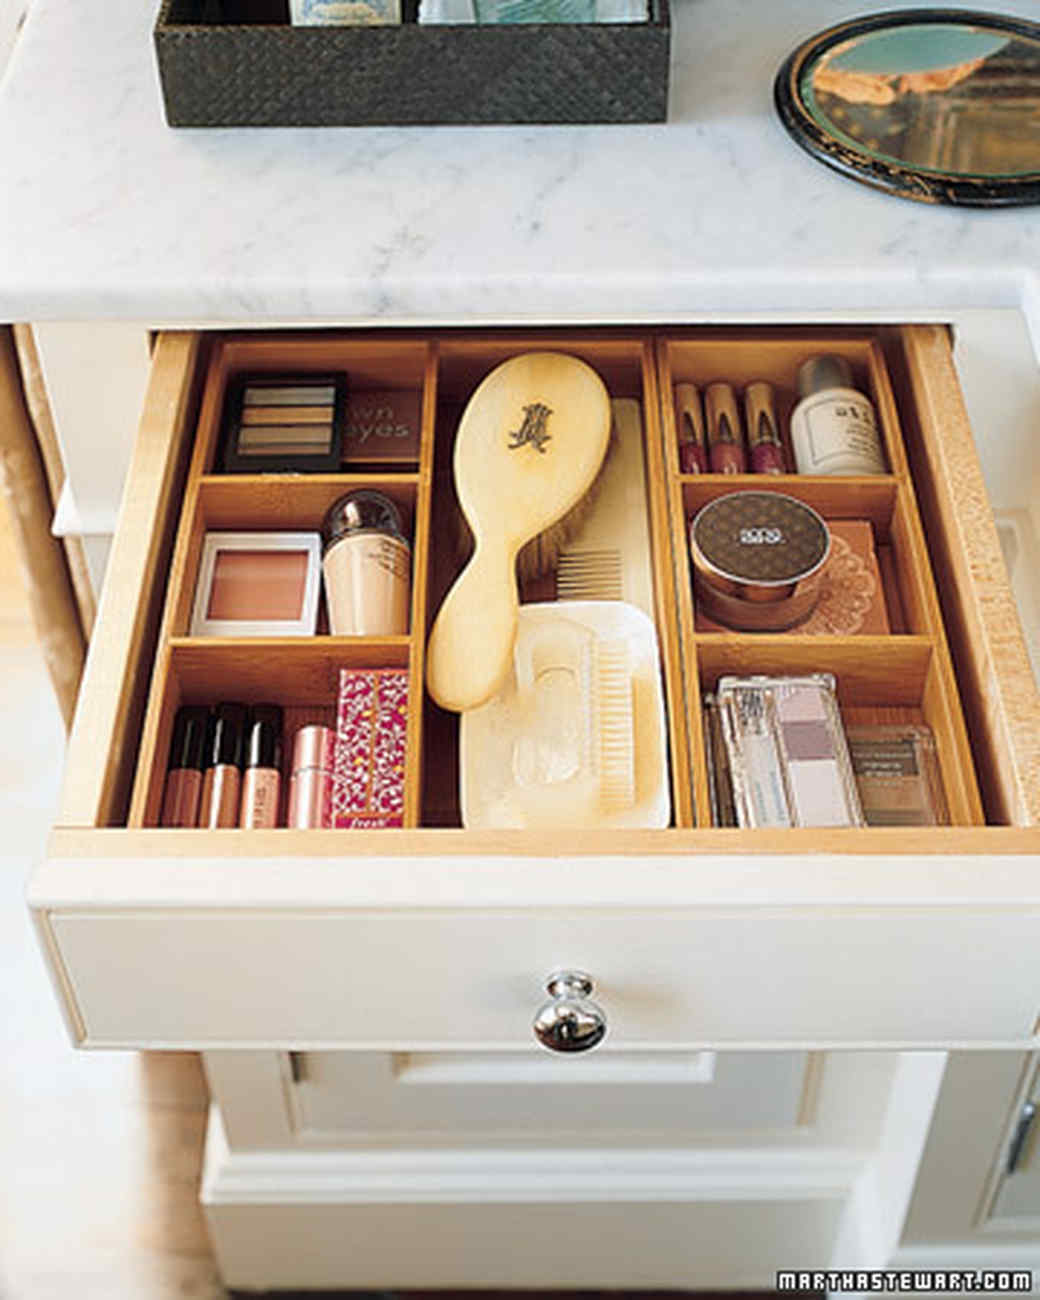 Easy ways to increase bathroom countertop storage